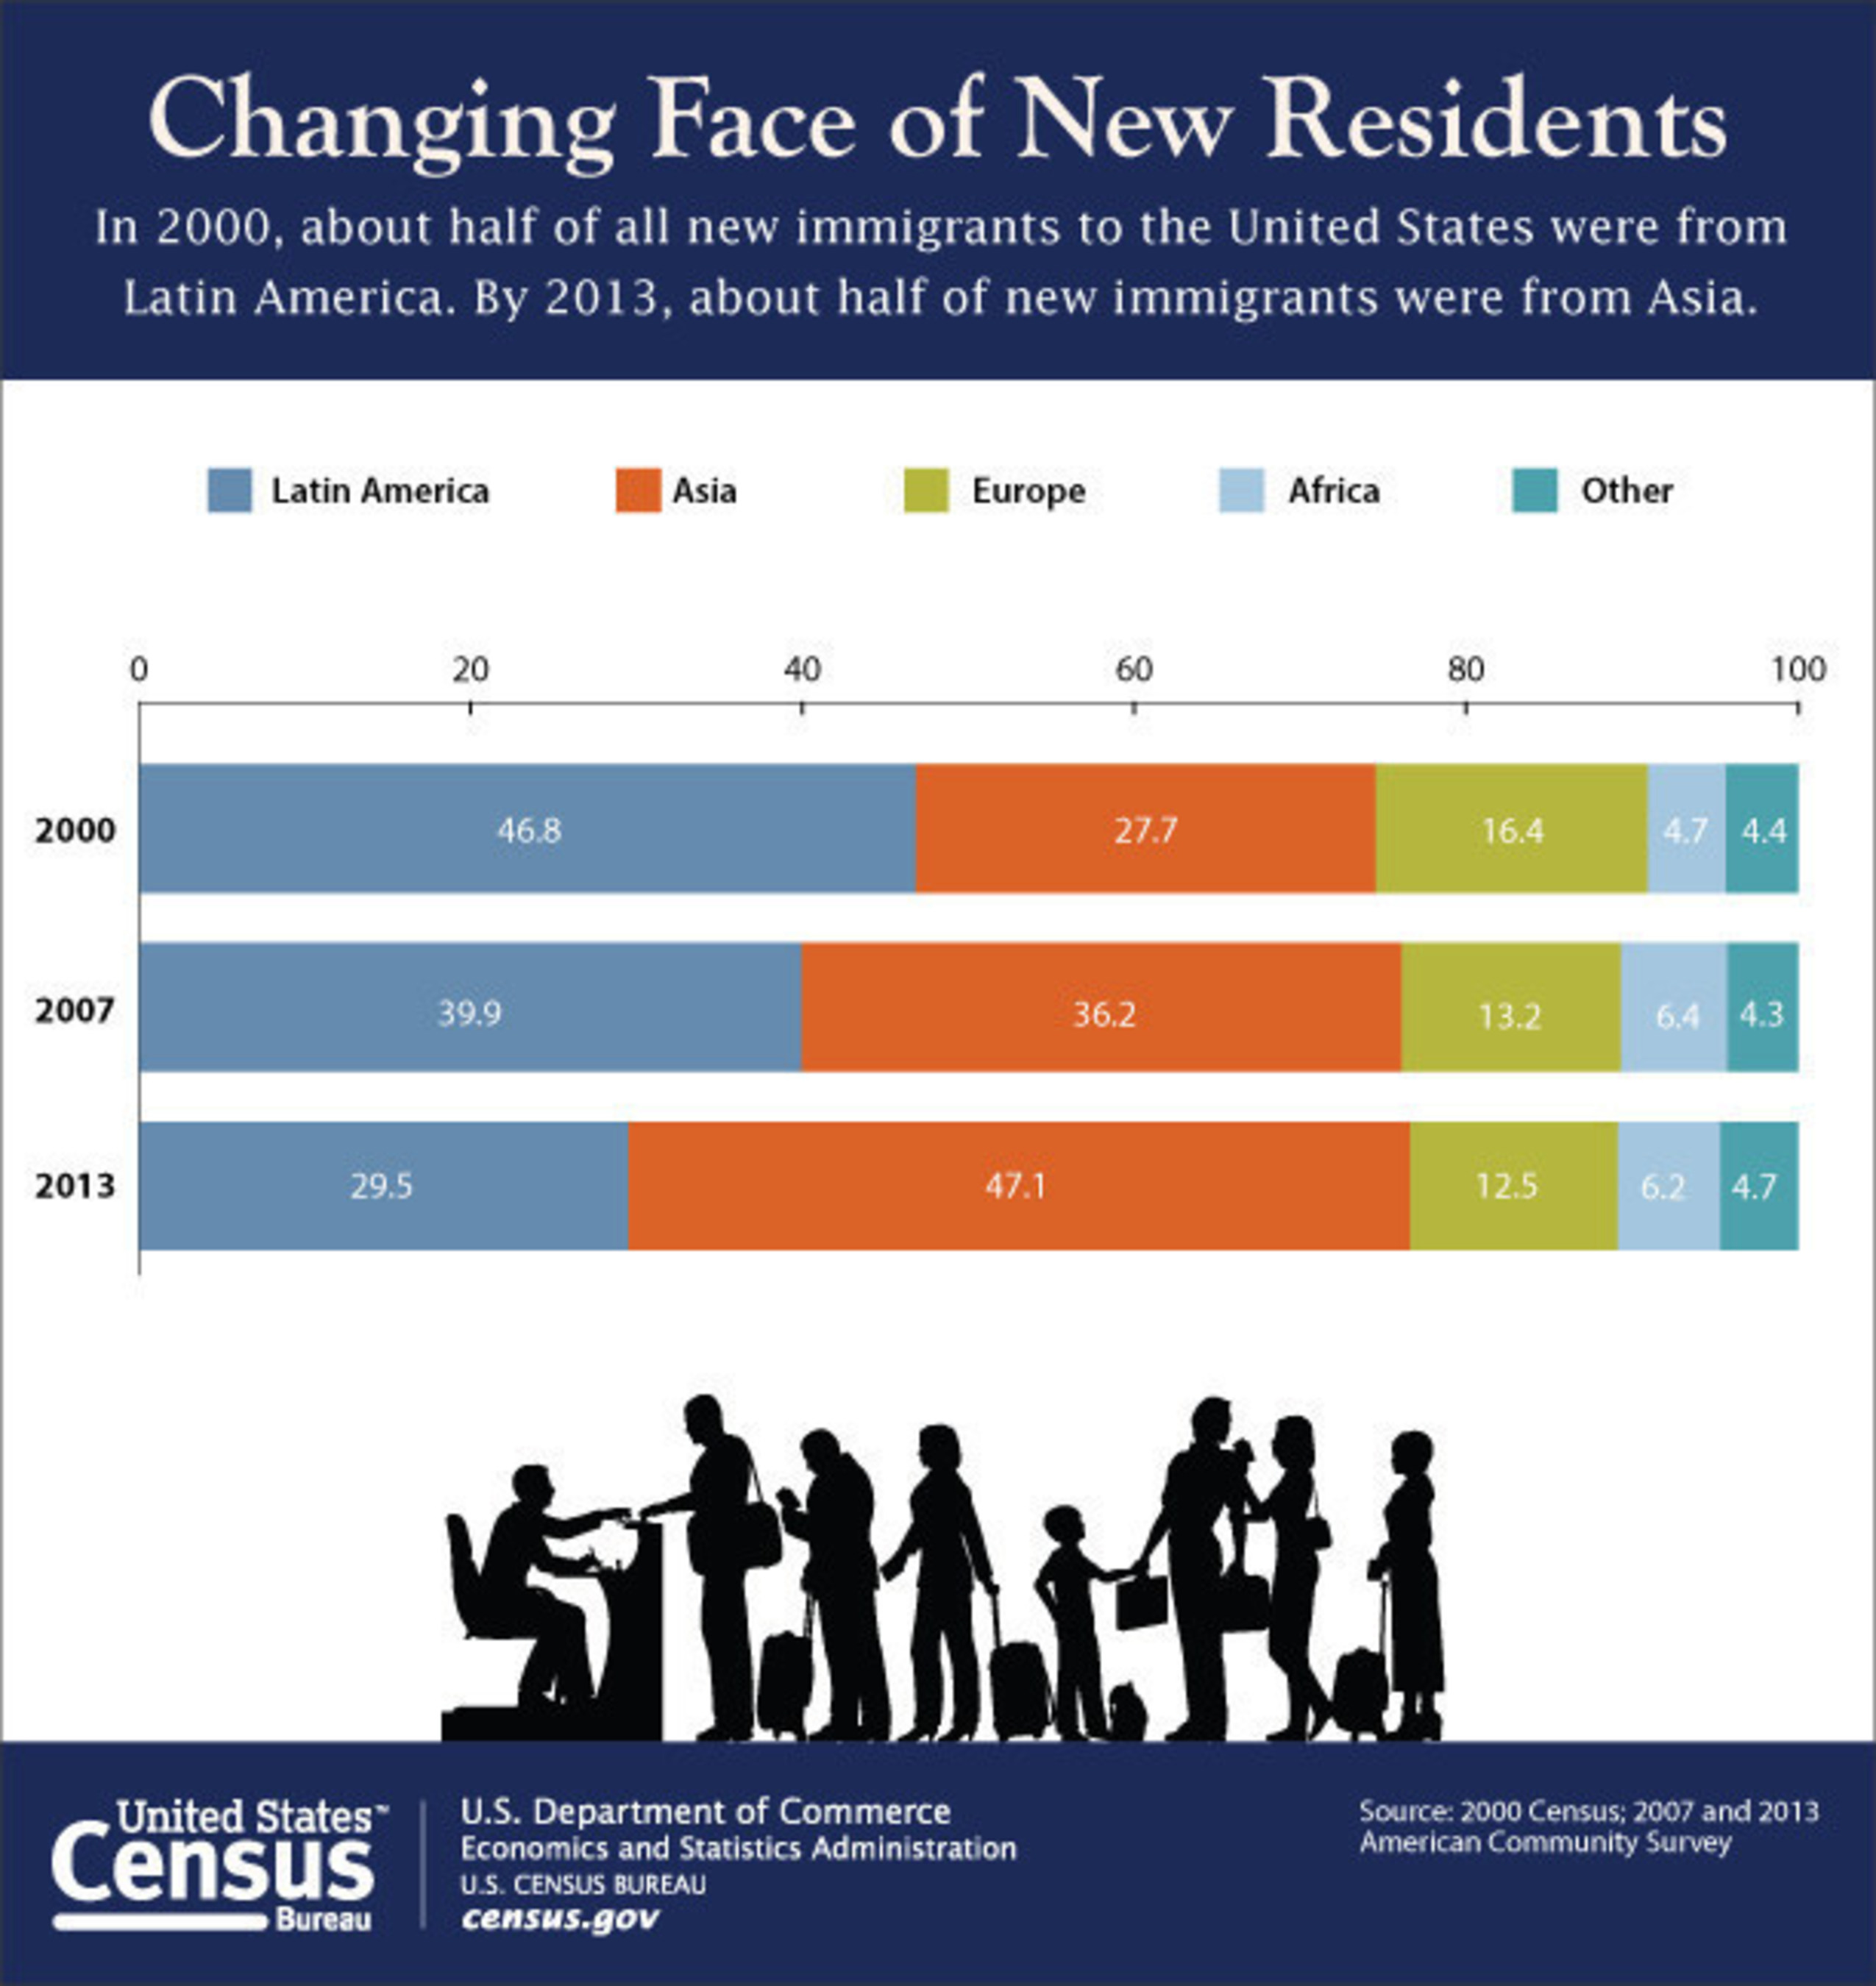 According to the U.S. Census Bureau, in 2013 more than half of new immigrants were from Asia. For more information, click here.